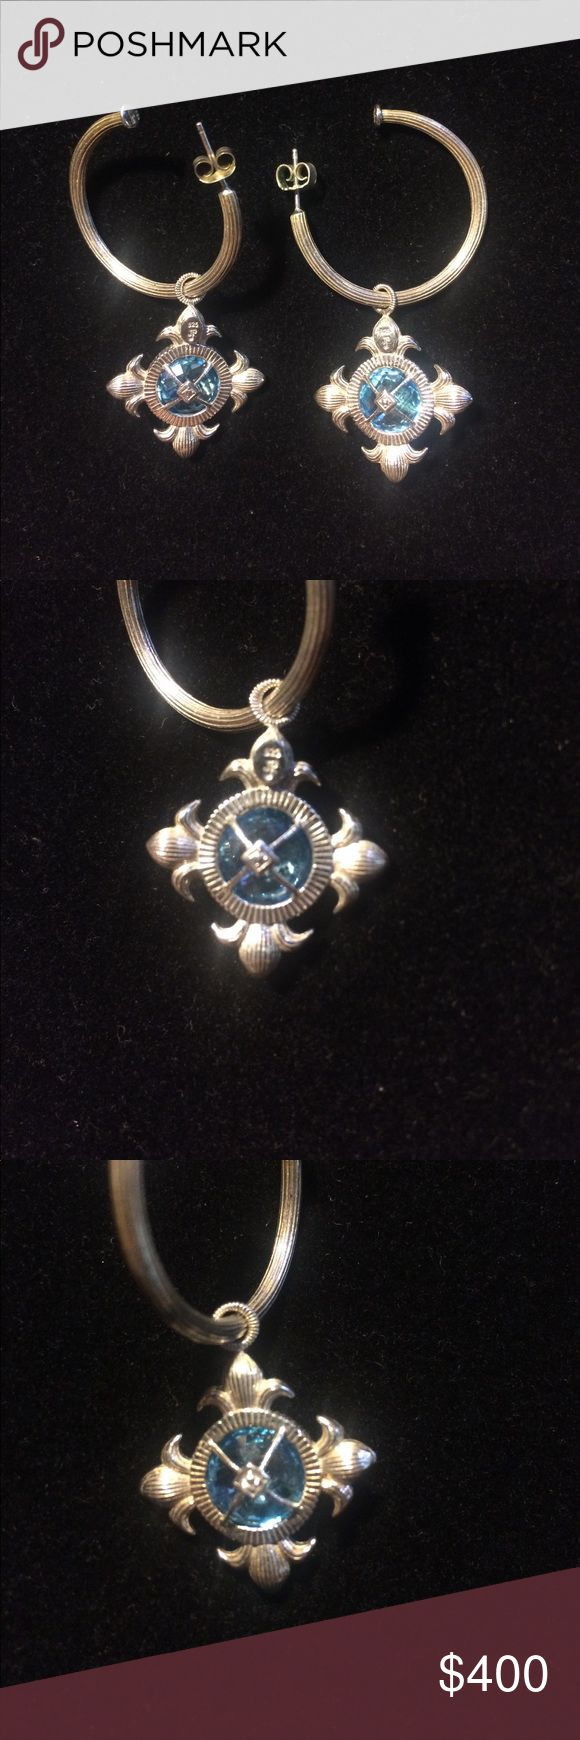 "Jude Frances Silver Hoop Charm Earrings GORGEOUS Jude Frances Hoop Charm Earrings in Sterling Silver, Aquamarine, and Pave Diamond. Hoops are just over 1"" in diameter and can be worn solo, or with other charms. Charms are 1"" long. Total earring length is 2"". I have other charms for sale, if you want to bundle! NEVER WORN! Jude Frances Jewelry Earrings"